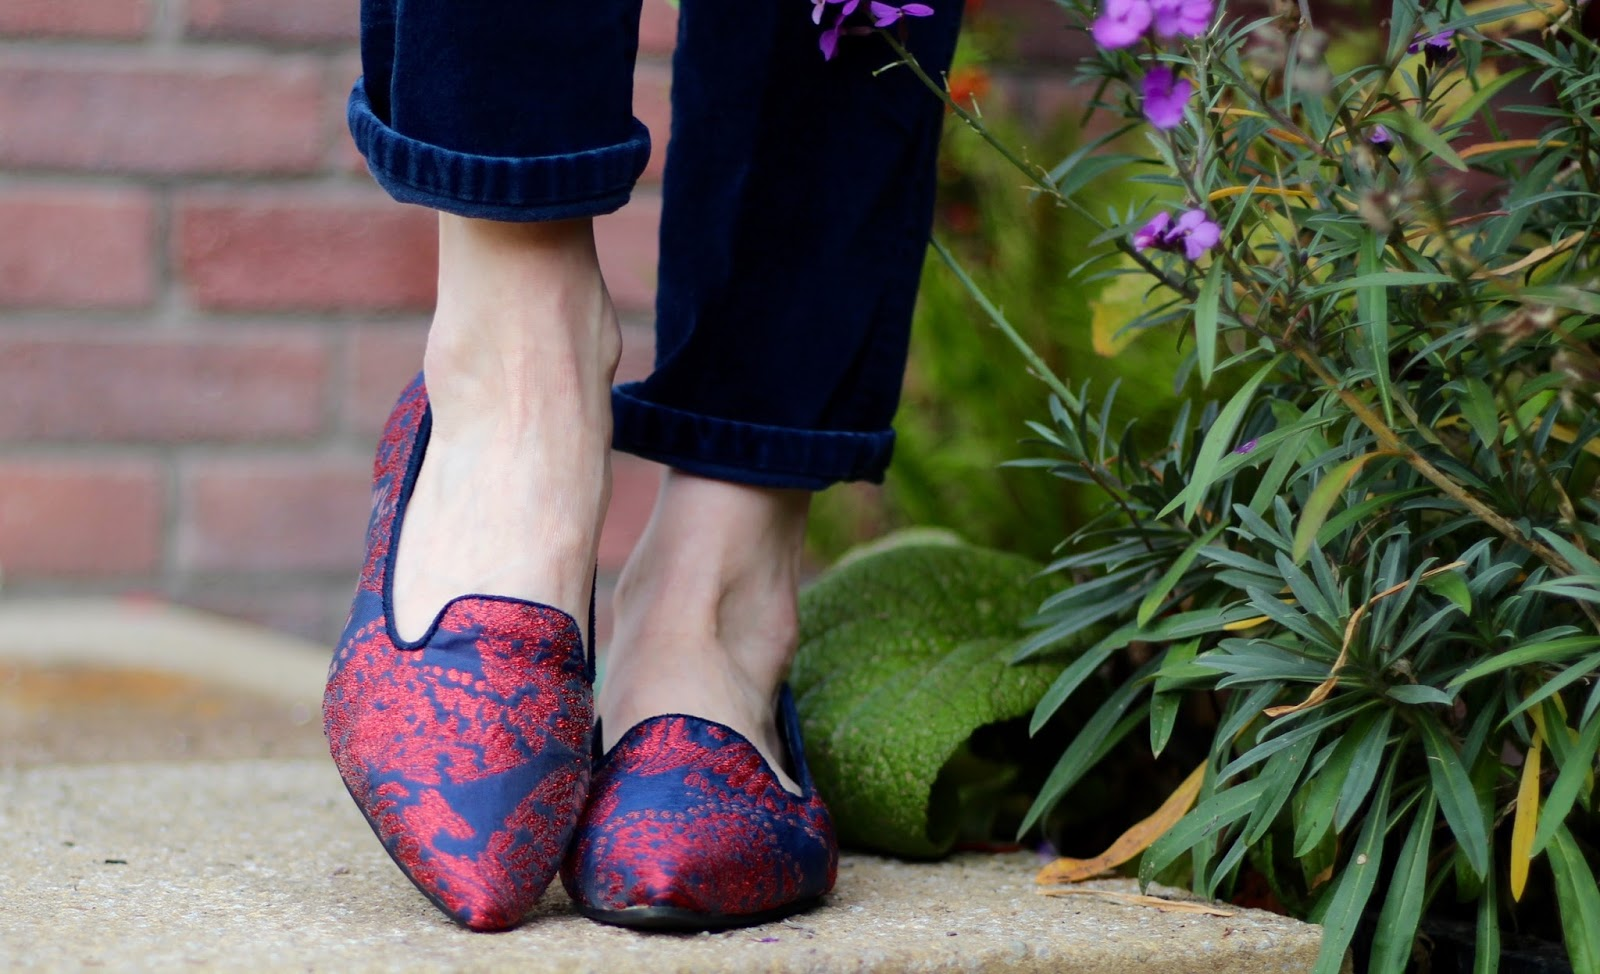 Kettlewell Navy Velvet trousers, Embroidered Shoes | Fake Fabulous